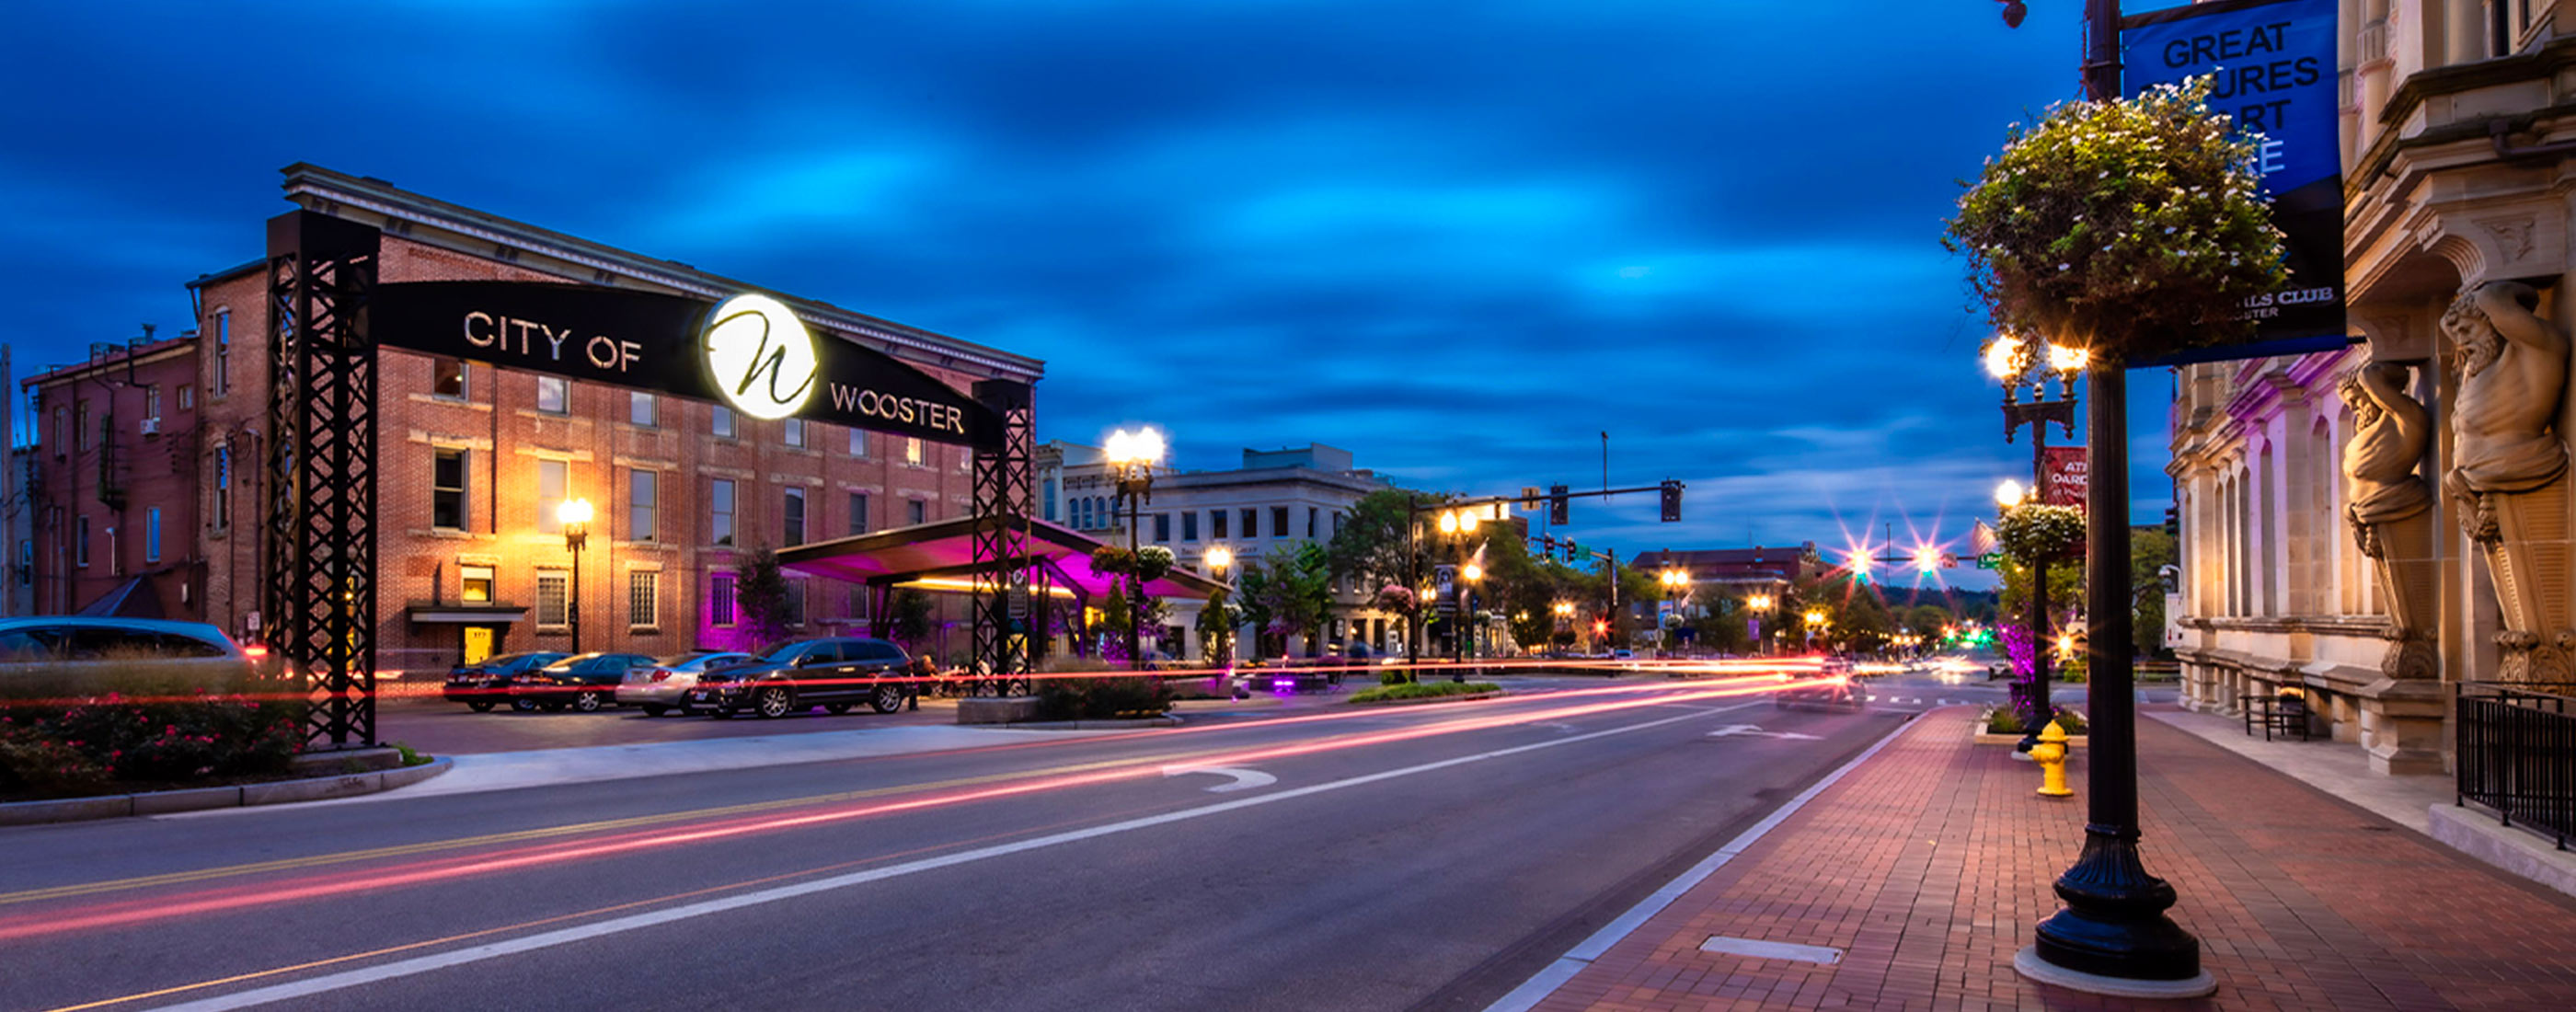 Cars drive through Downtown Wooster, Ohio streetscape at night.